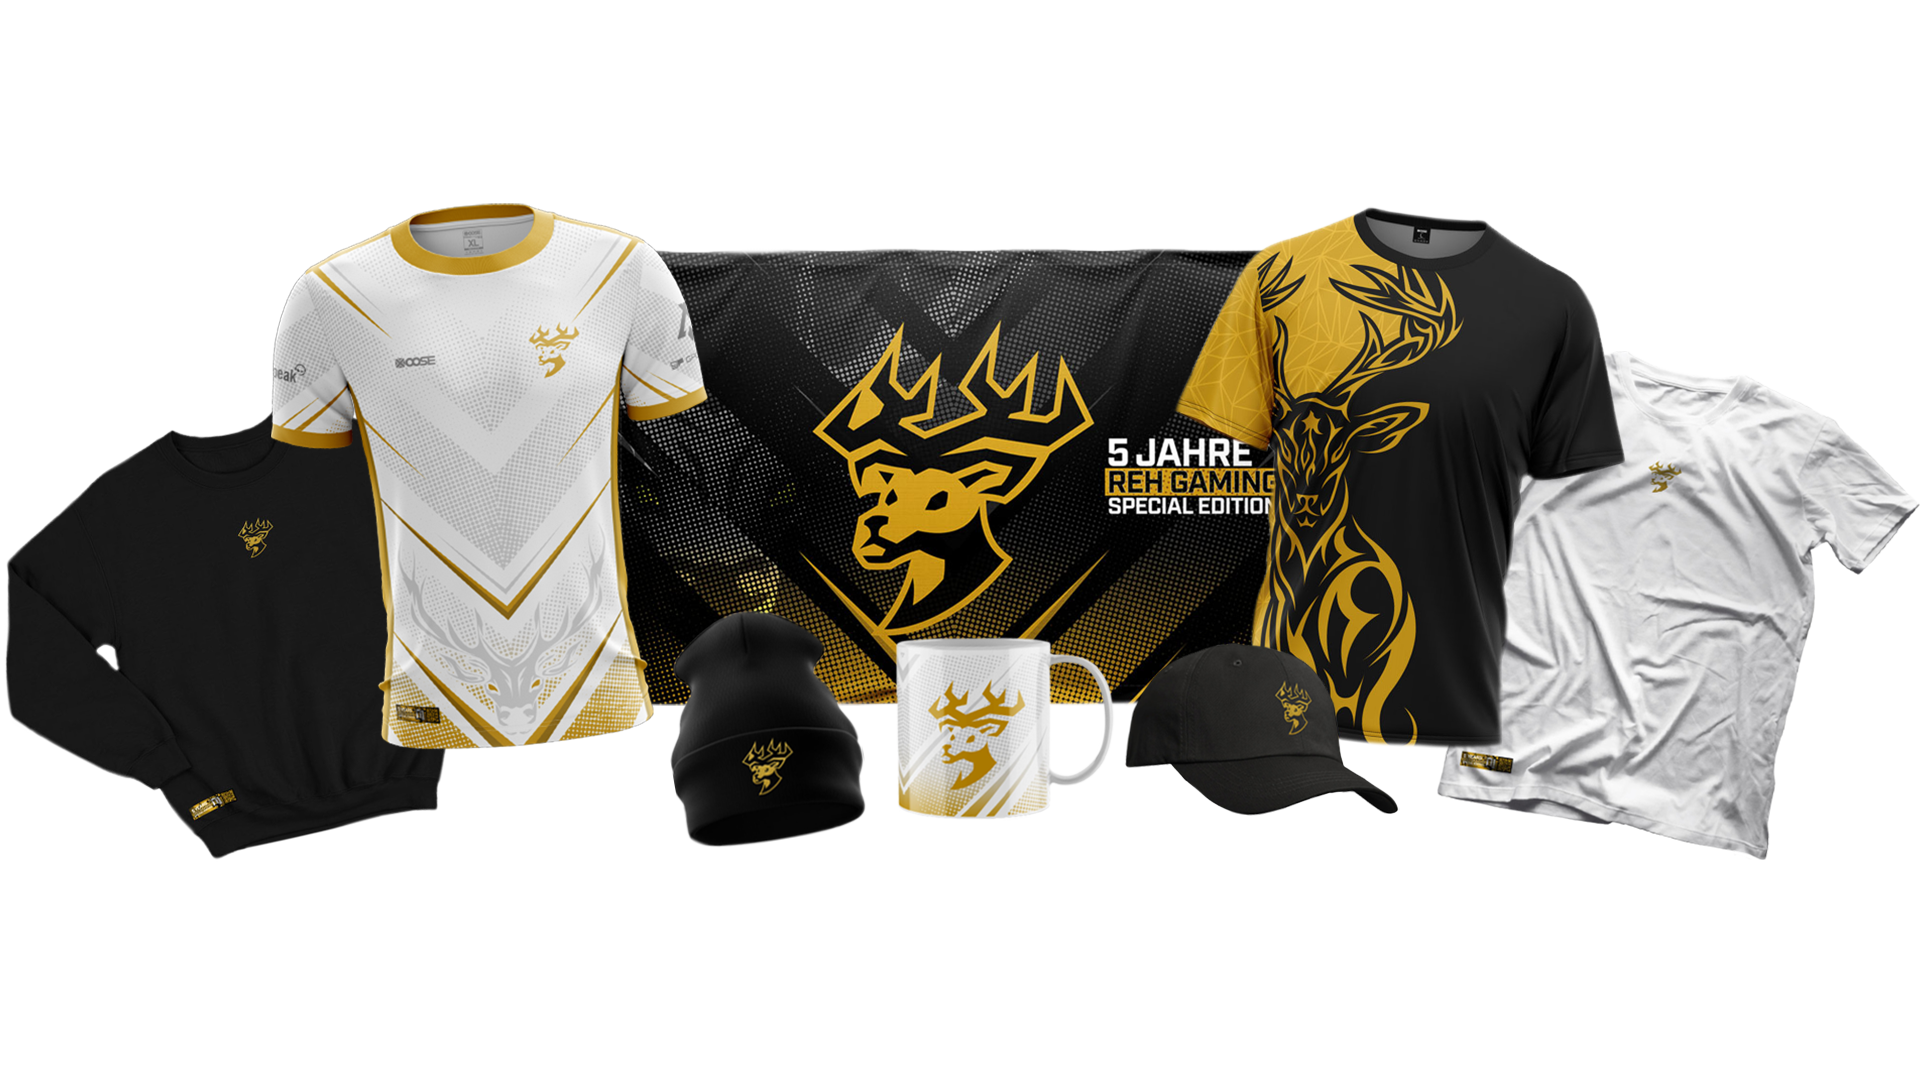 5 Jahre REH Gaming Merchandise Collection